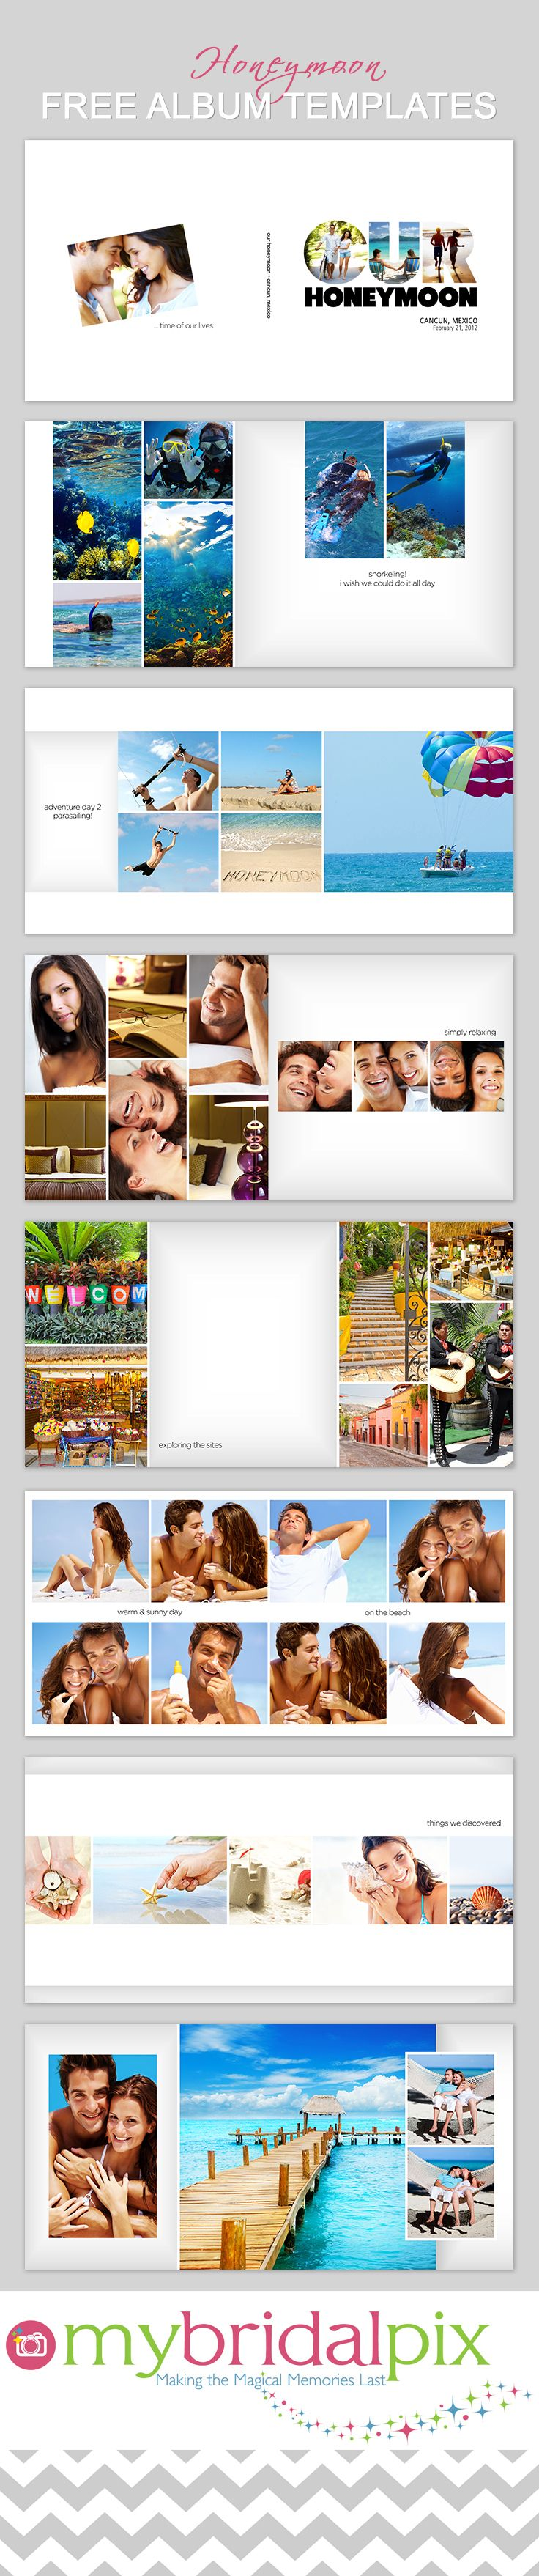 Free #Honeymoon Photo Book #Template- DIY #weddings albums and photo books www.mybridalpix.com